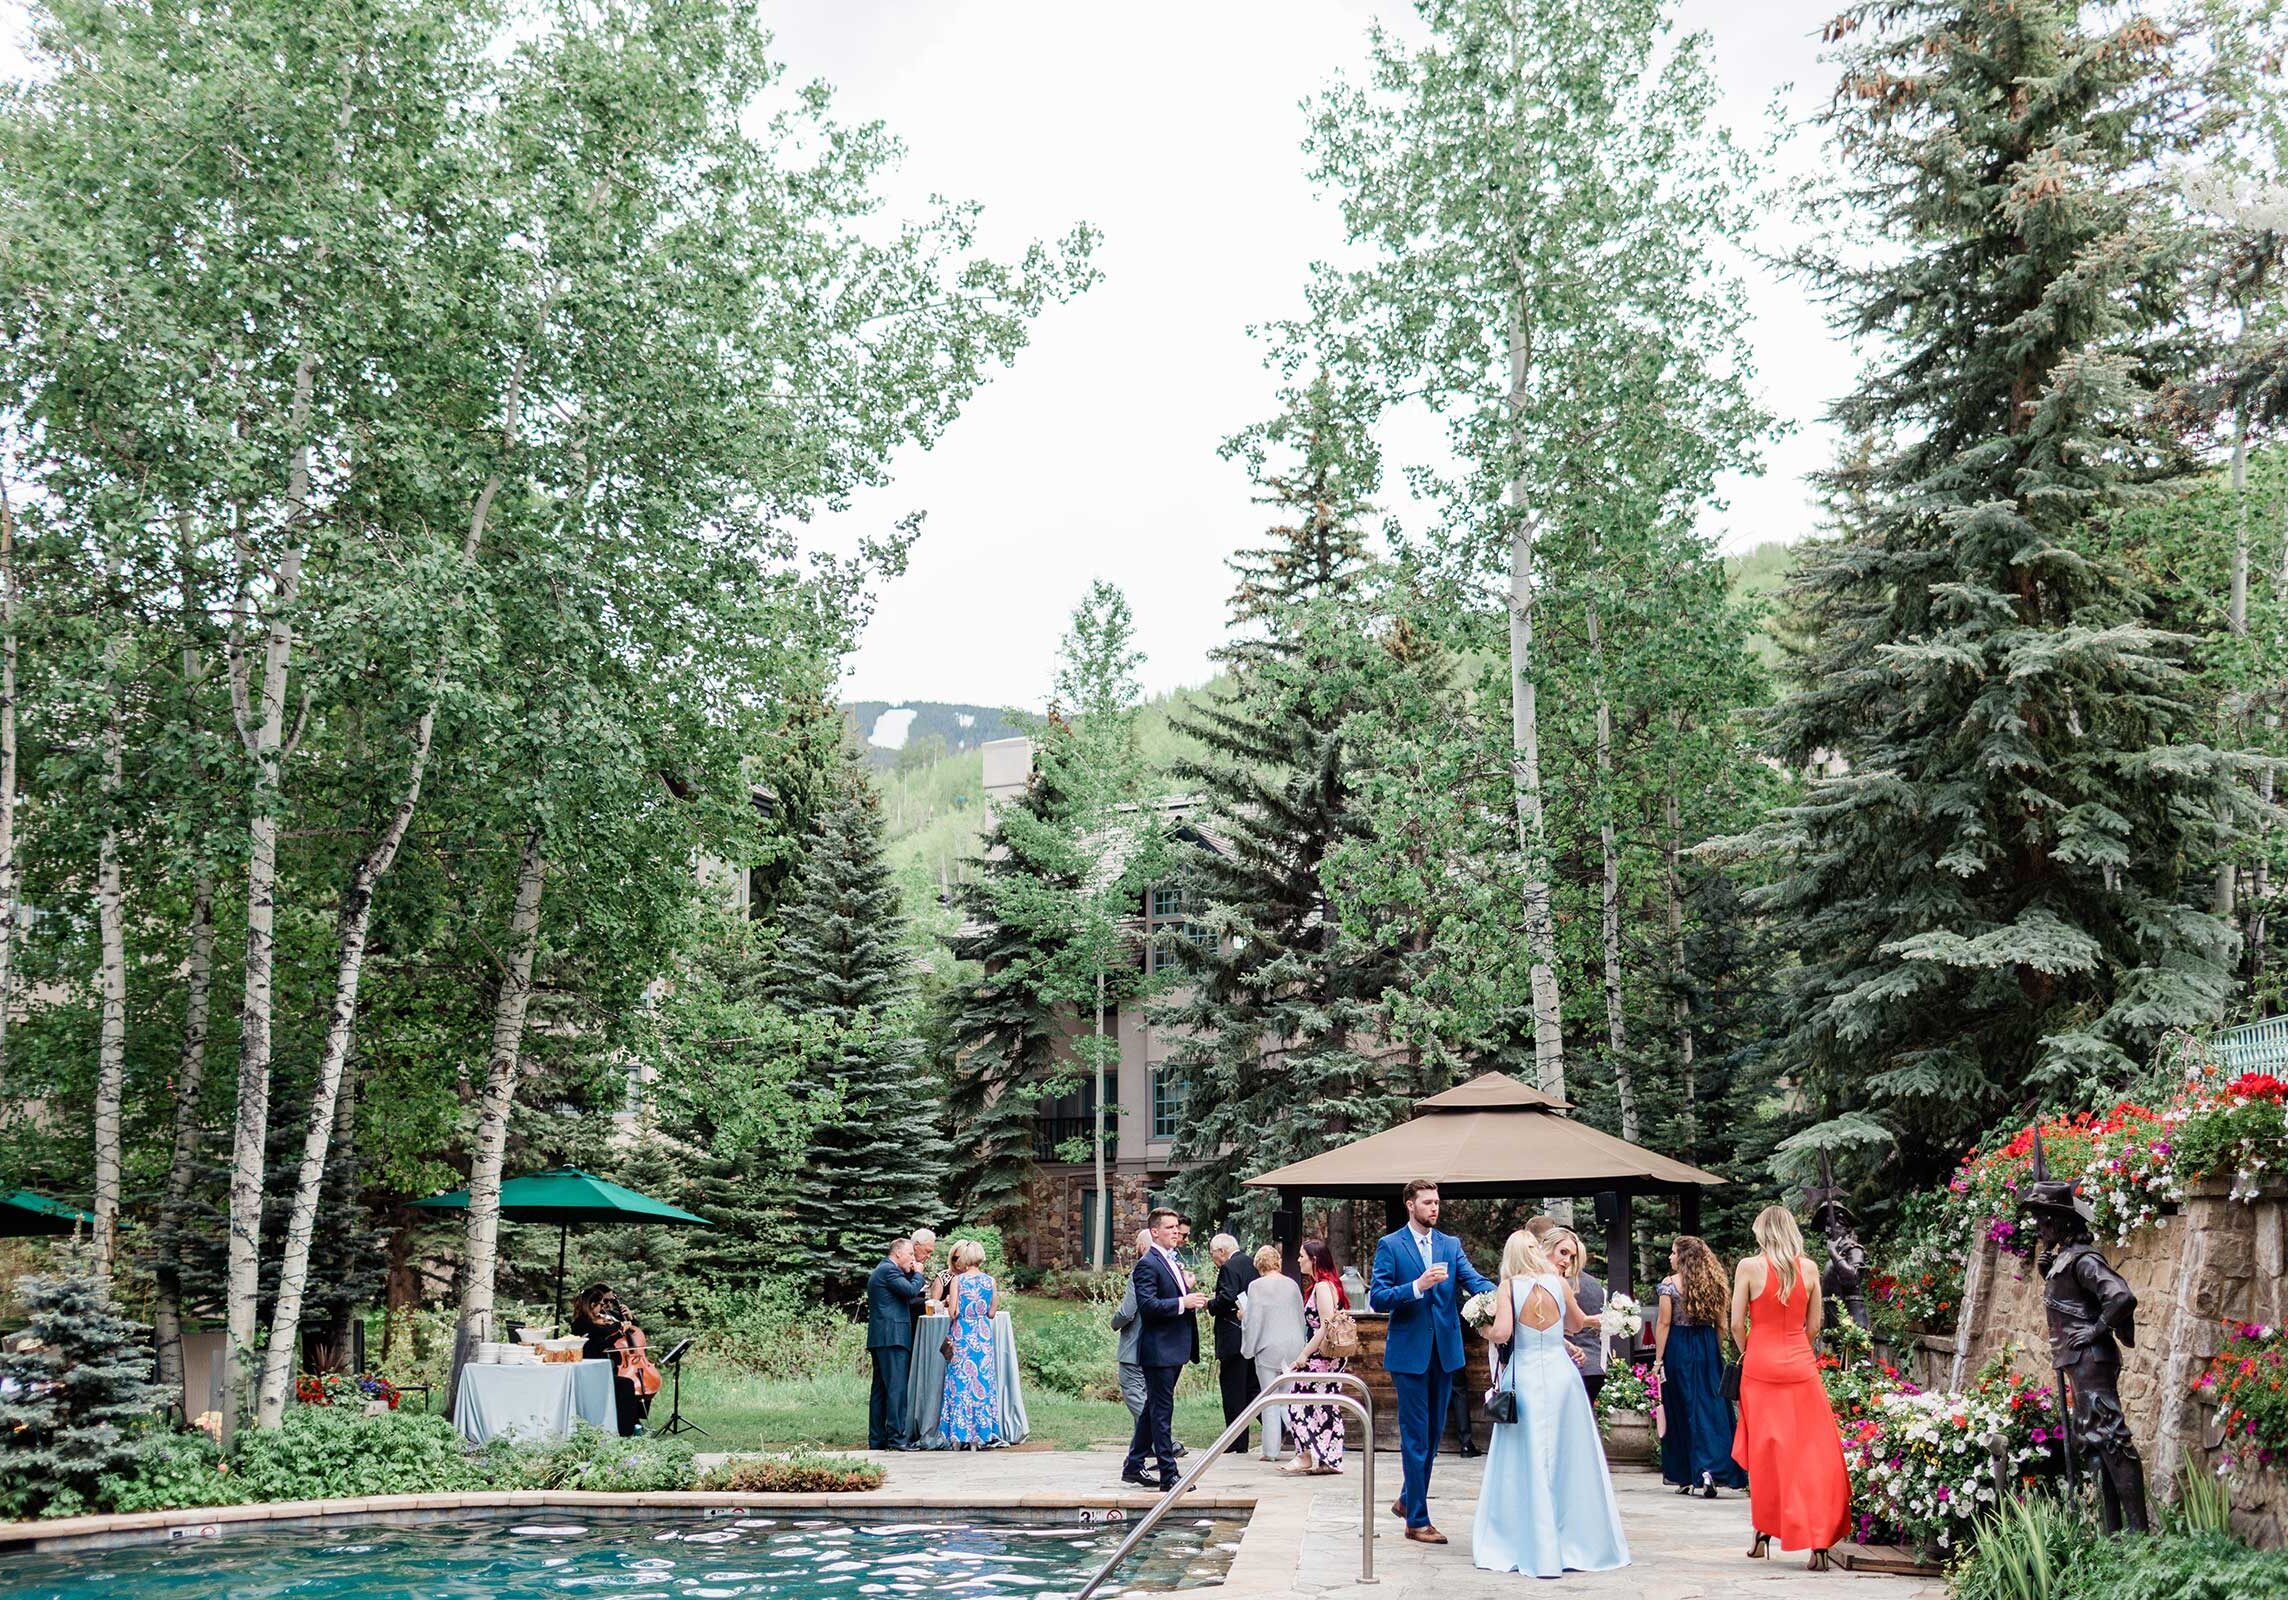 People elegantly addressed standing around a pool, drinking cocktails